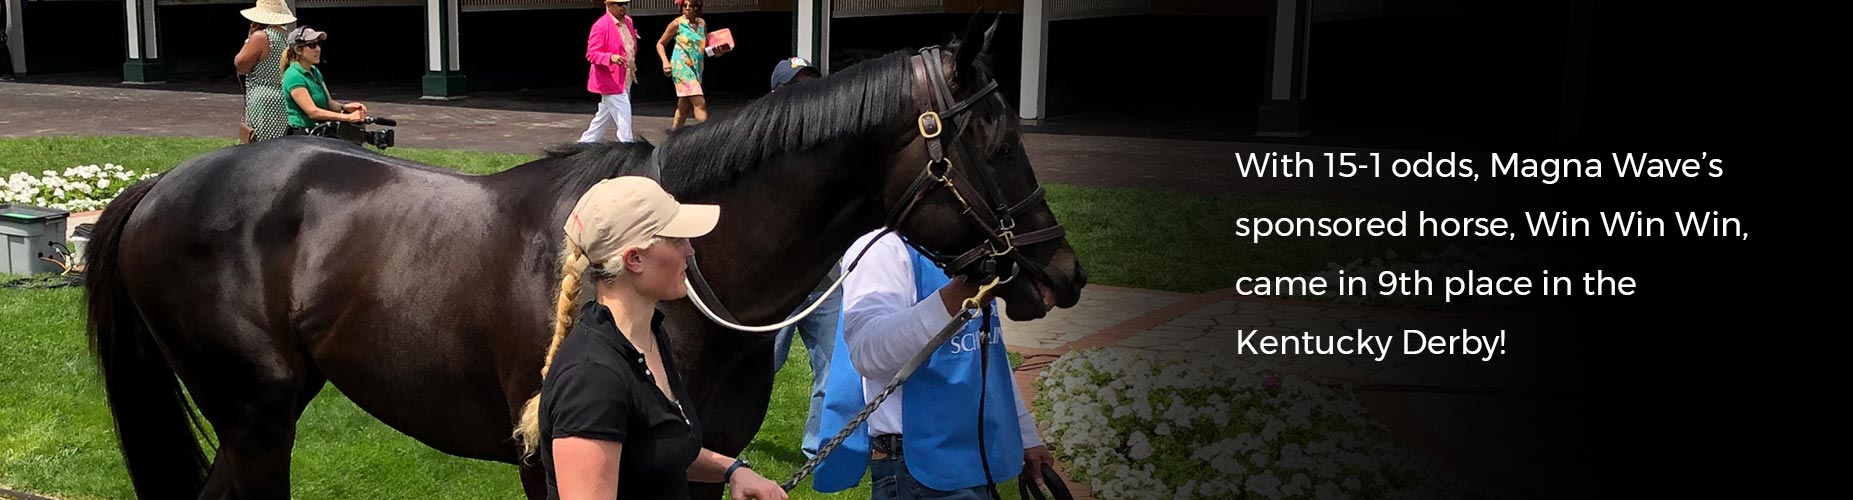 With 15-1 odds, Magna Wave's sponsored horse, Win Win Win, came in 9th place in the Kentucky Derby!